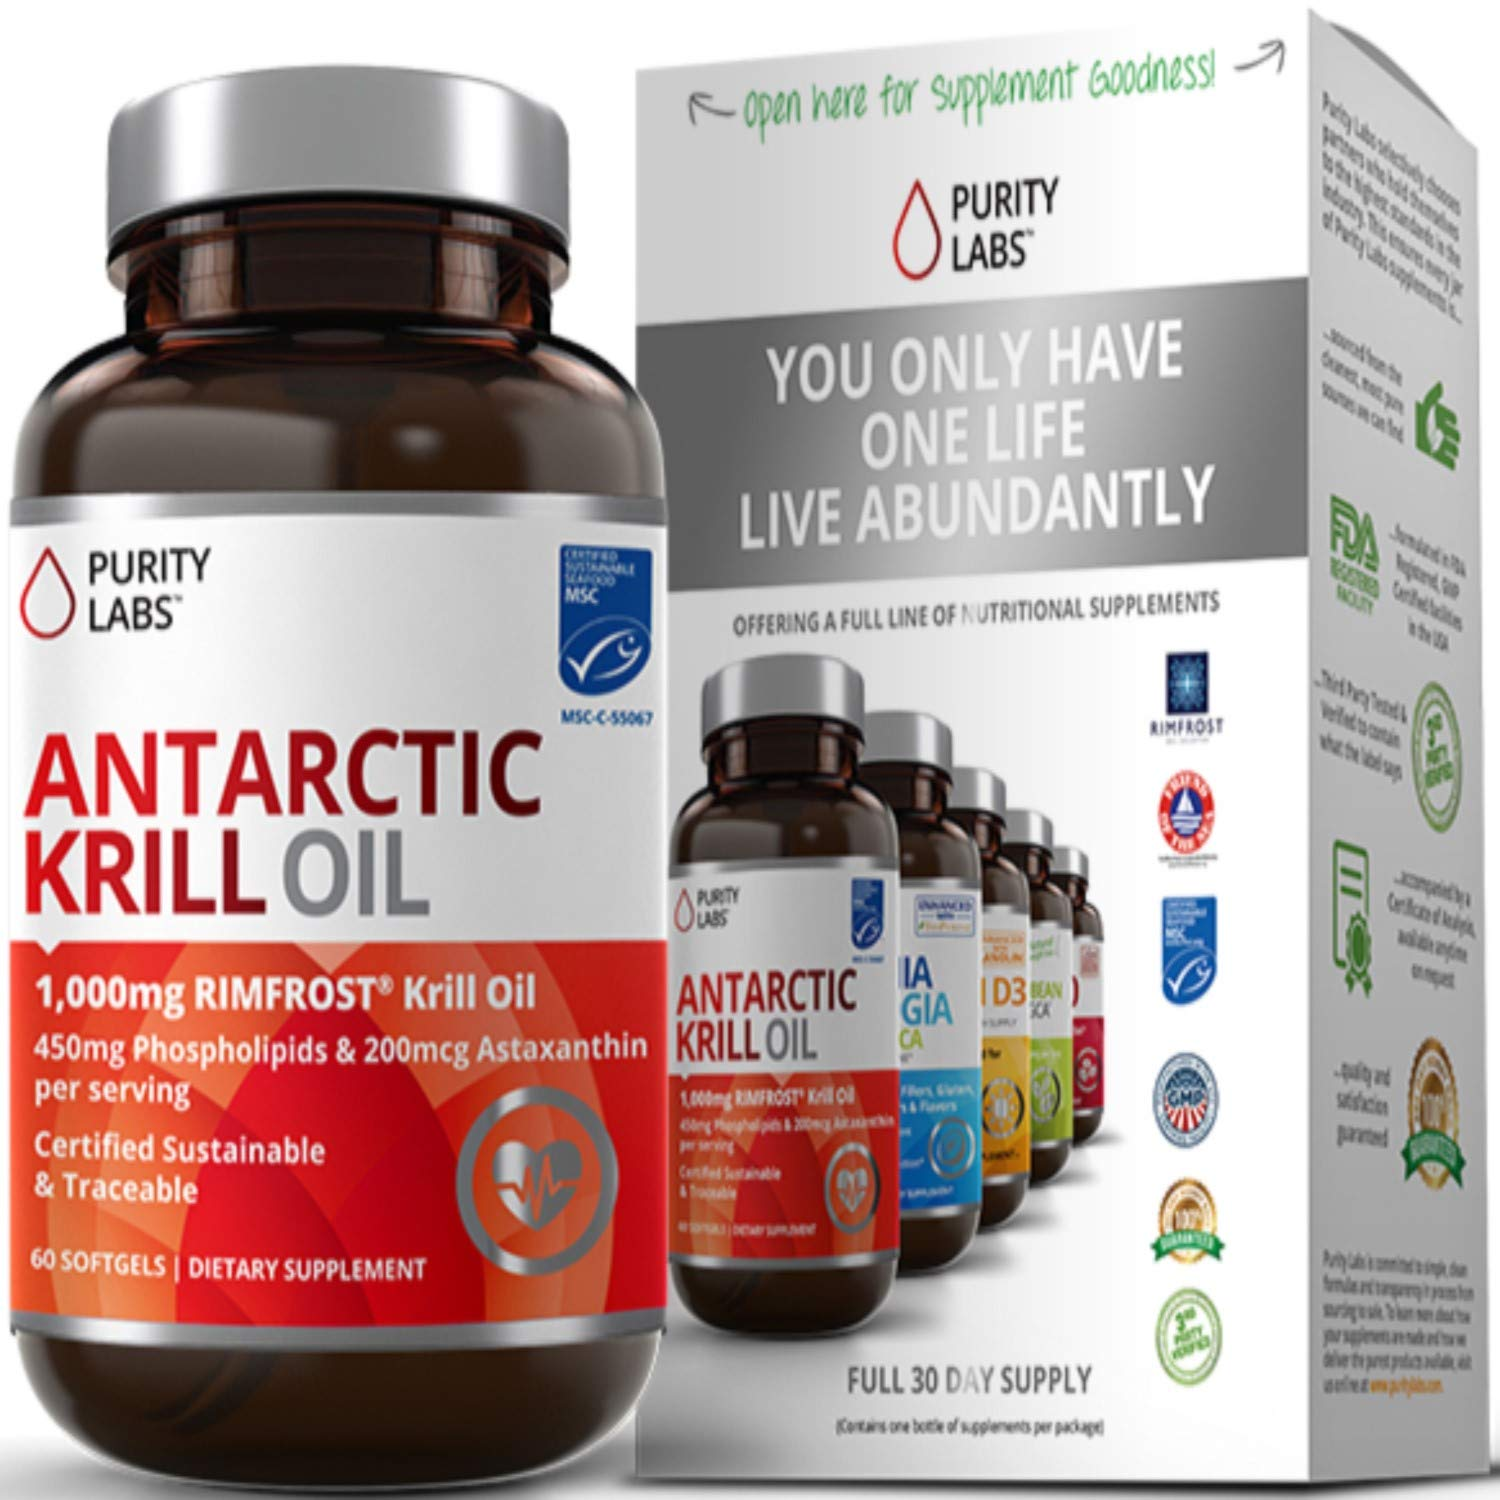 Pure Antarctic Krill Oil with Astaxanthin and K-REAL® - 1,000mg per serving - 60 Liquid Softgels - Contains DHA & EPA Omega 3s and Phospholipids - Sus by Purity Labs